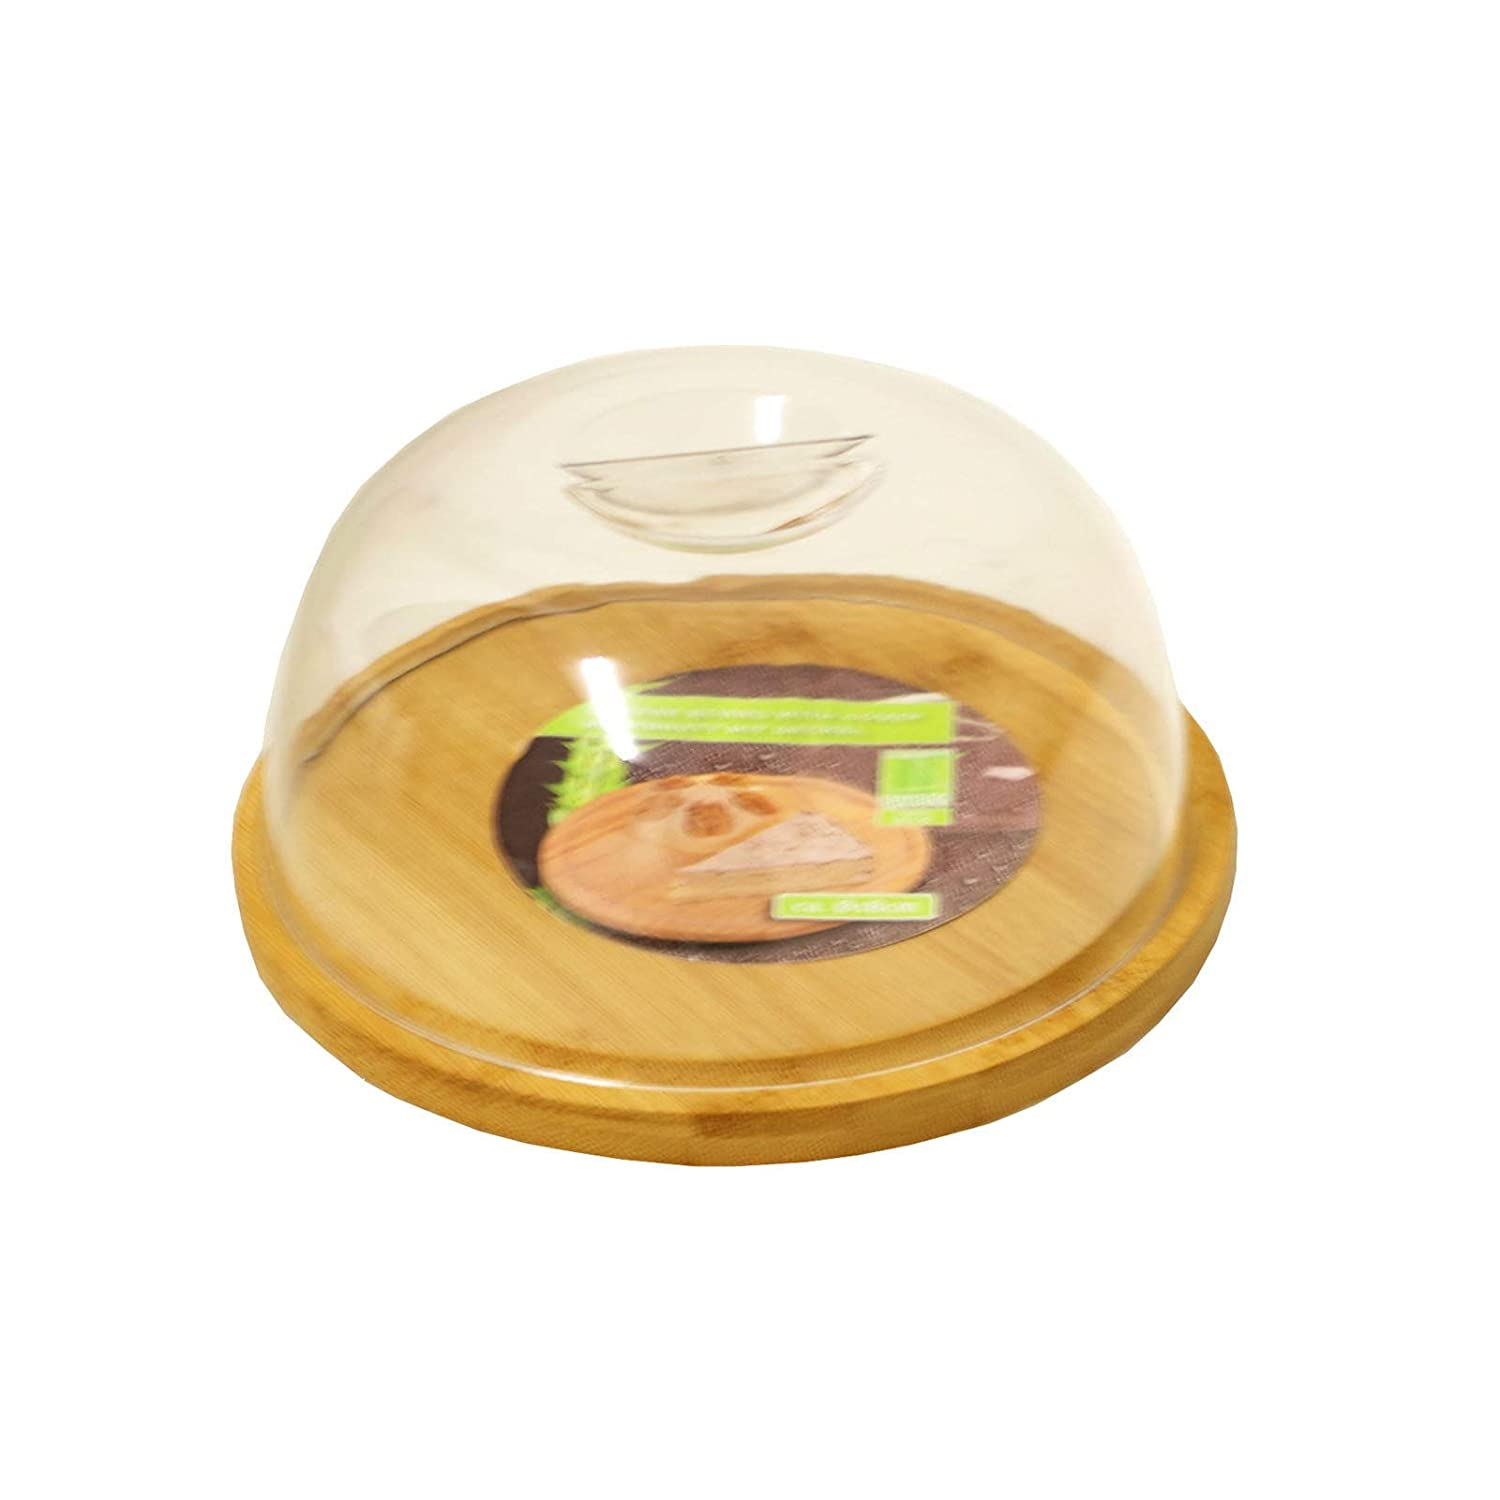 Round Bamboo Cheese Board with Plastic Cover For Keeping and Serving Edco